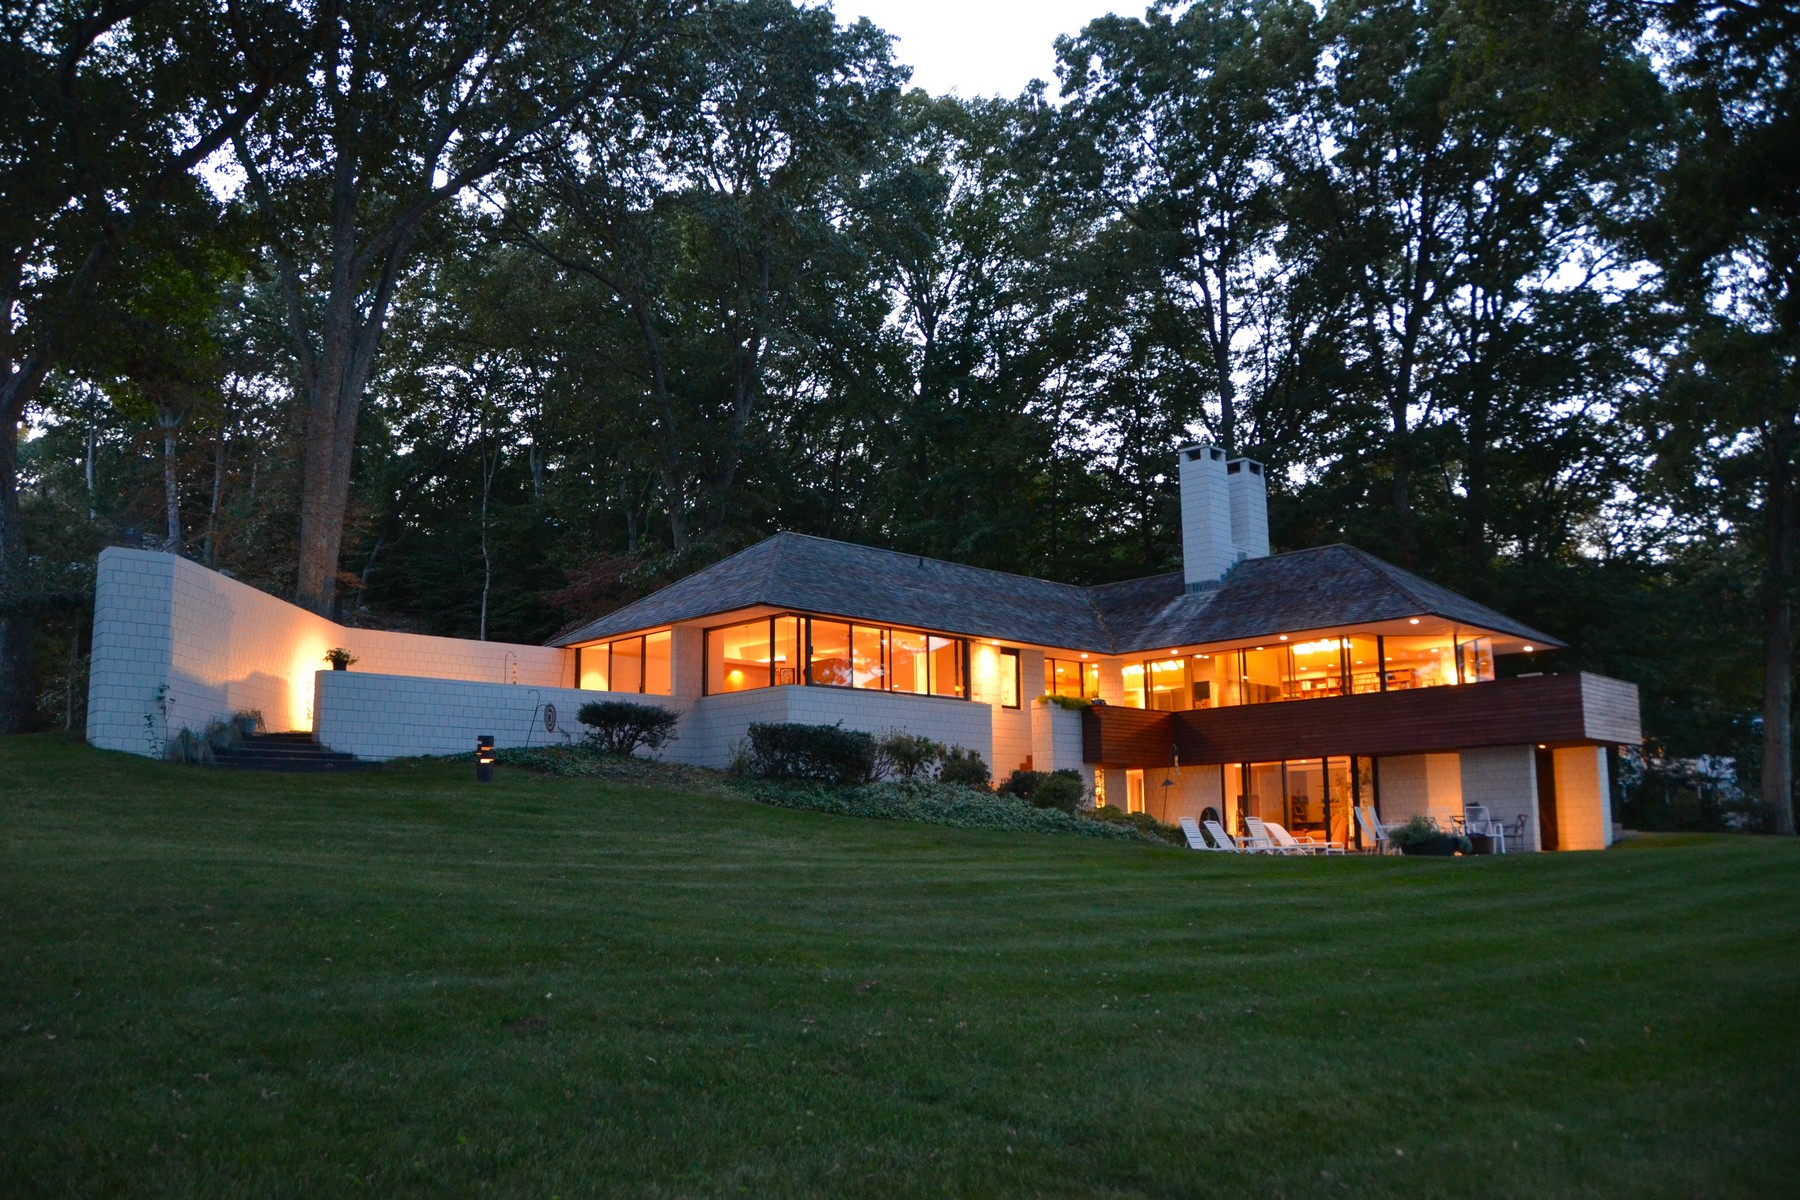 Casa Unifamiliar por un Venta en Mid Century Modern Masterpiece on Ct River 42 Crosstrees Hill Essex, Connecticut 06426 Estados Unidos